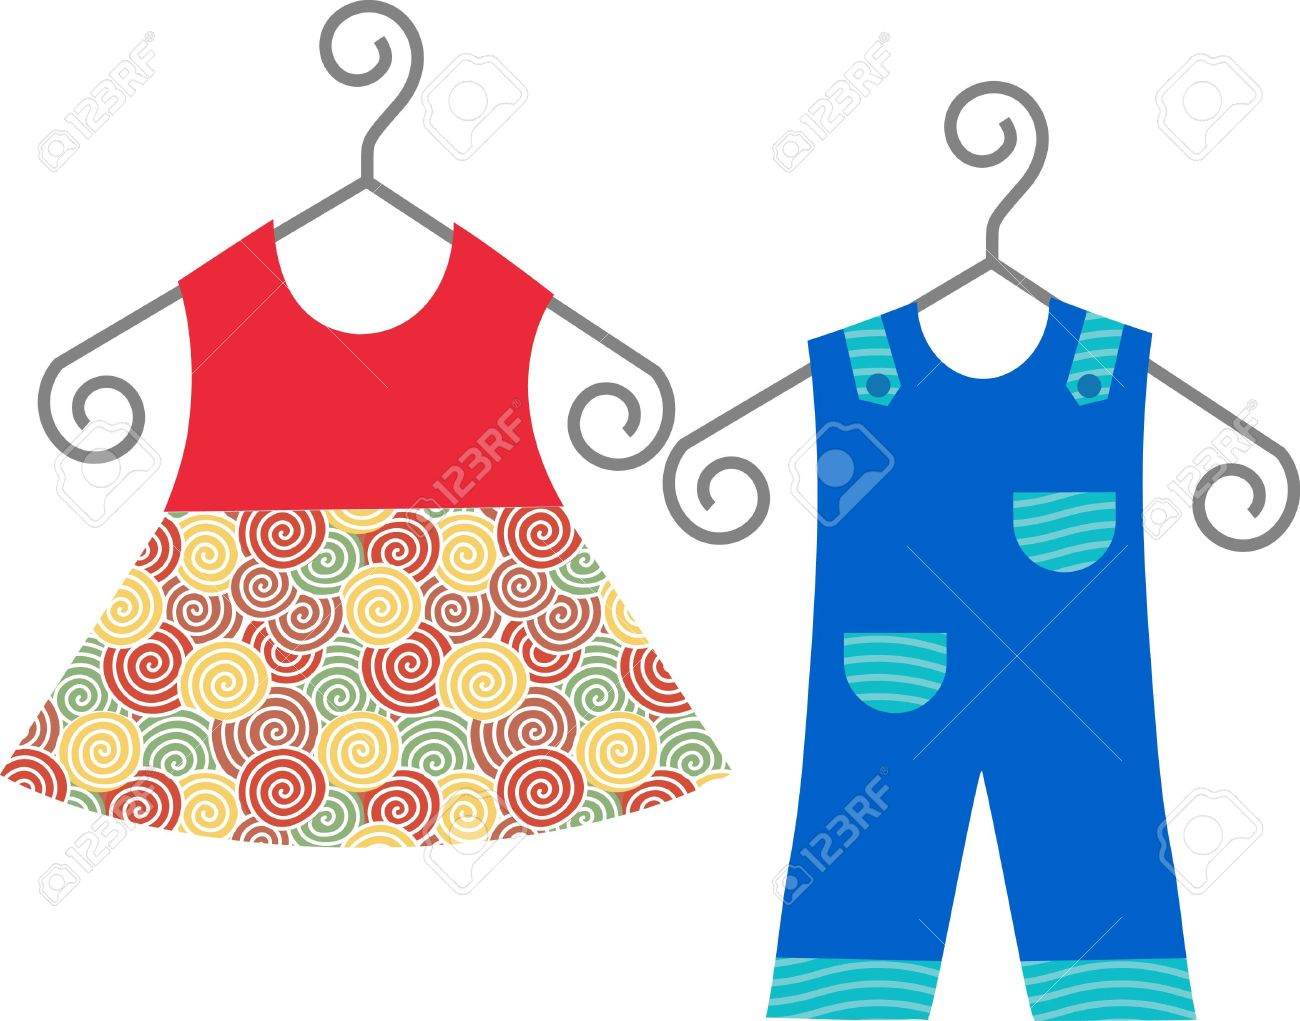 baby clothes hanging on clothes hanger dress and suit royalty free